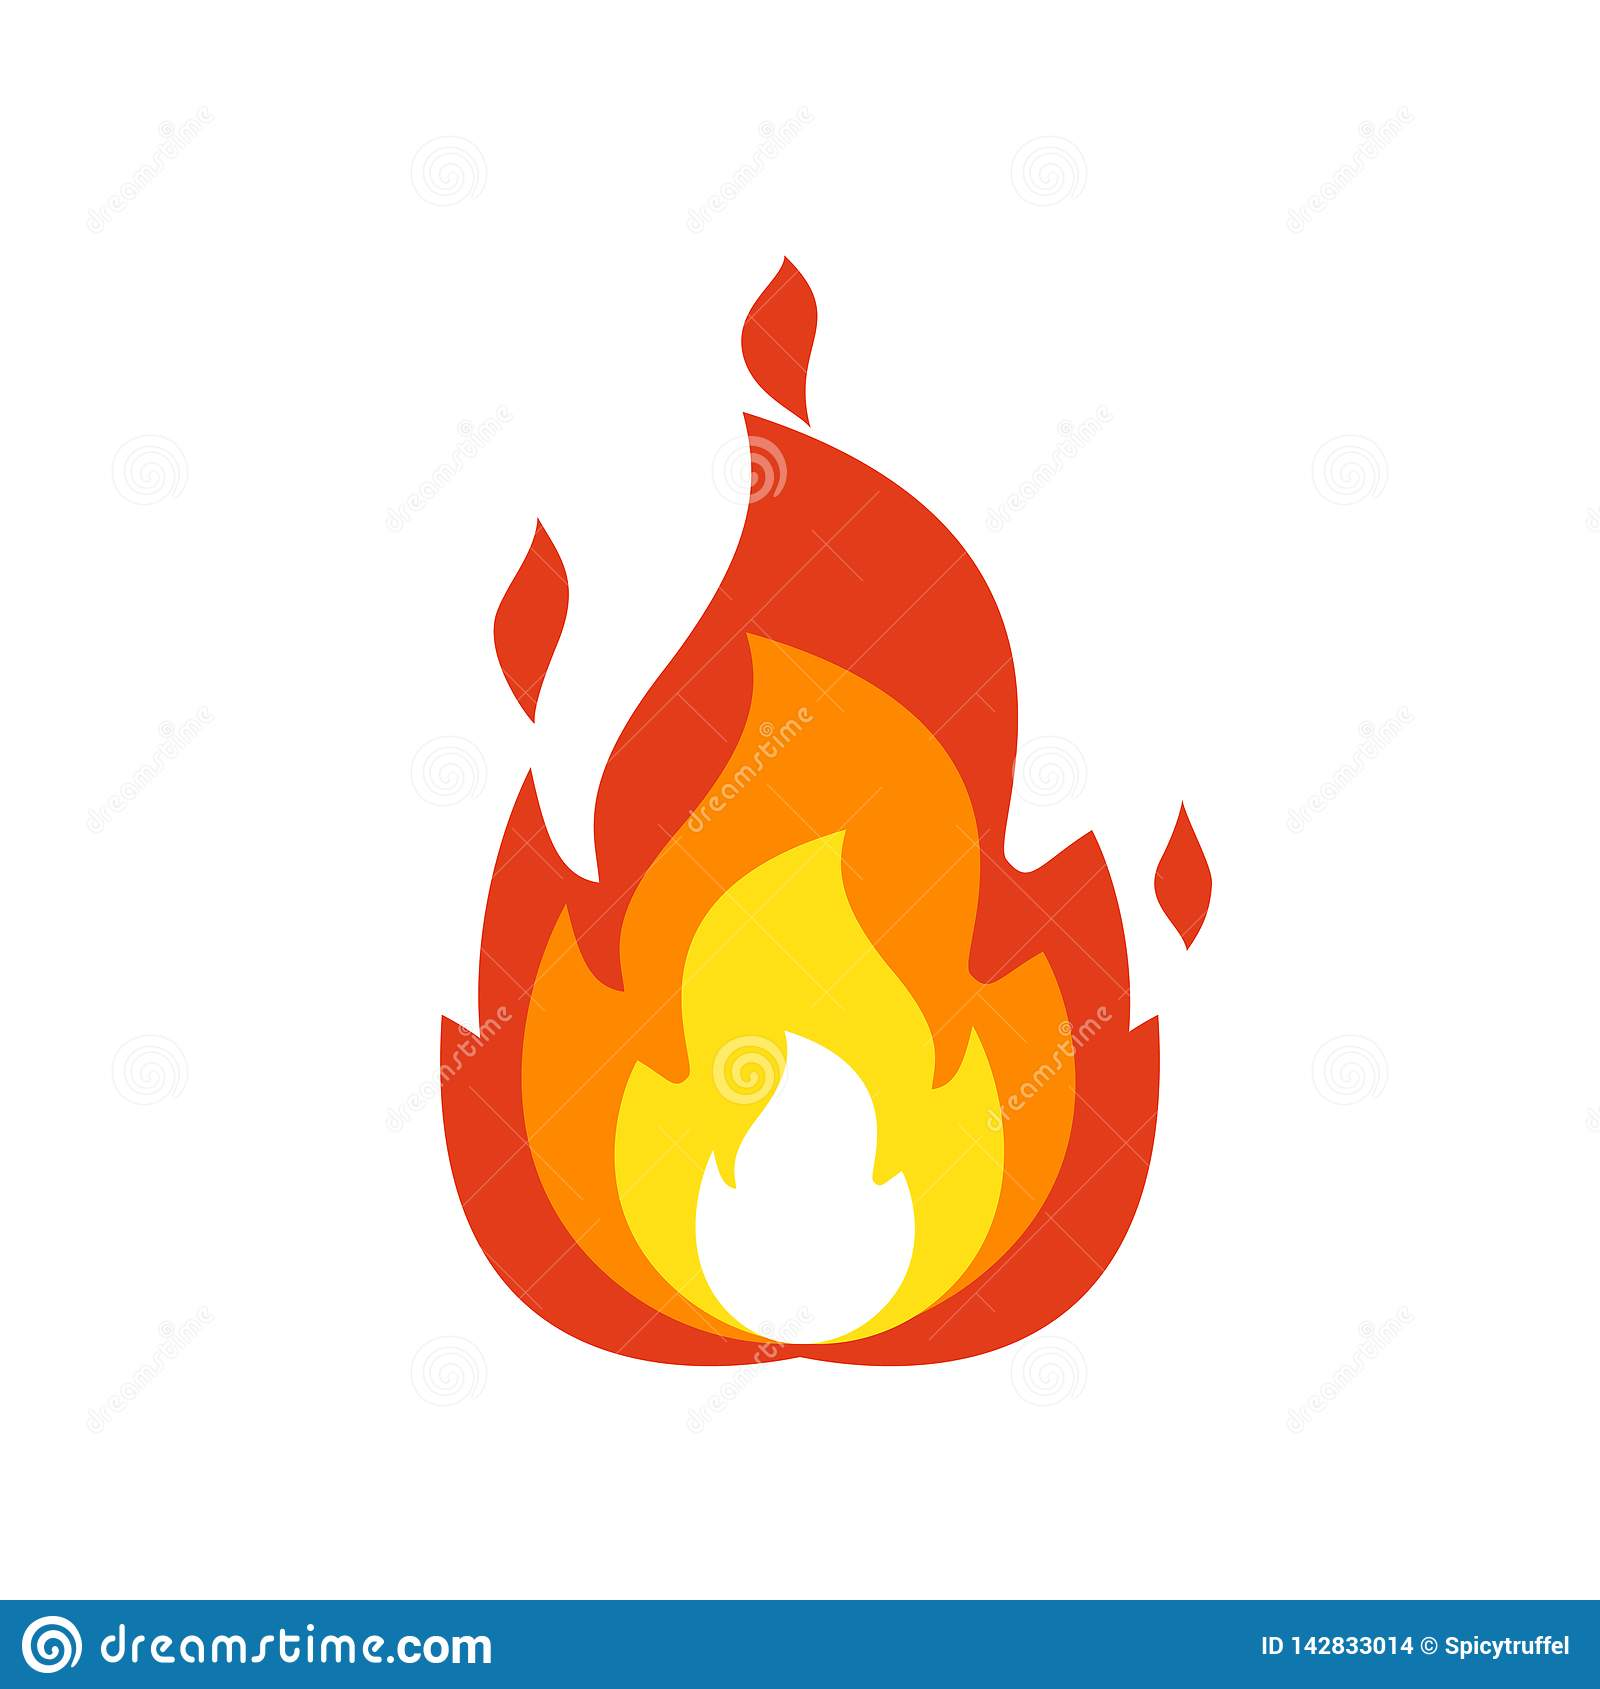 Fire flame icon. Isolated bonfire sign, emoticon flame symbol isolated on white, fire emoji and logo illustration